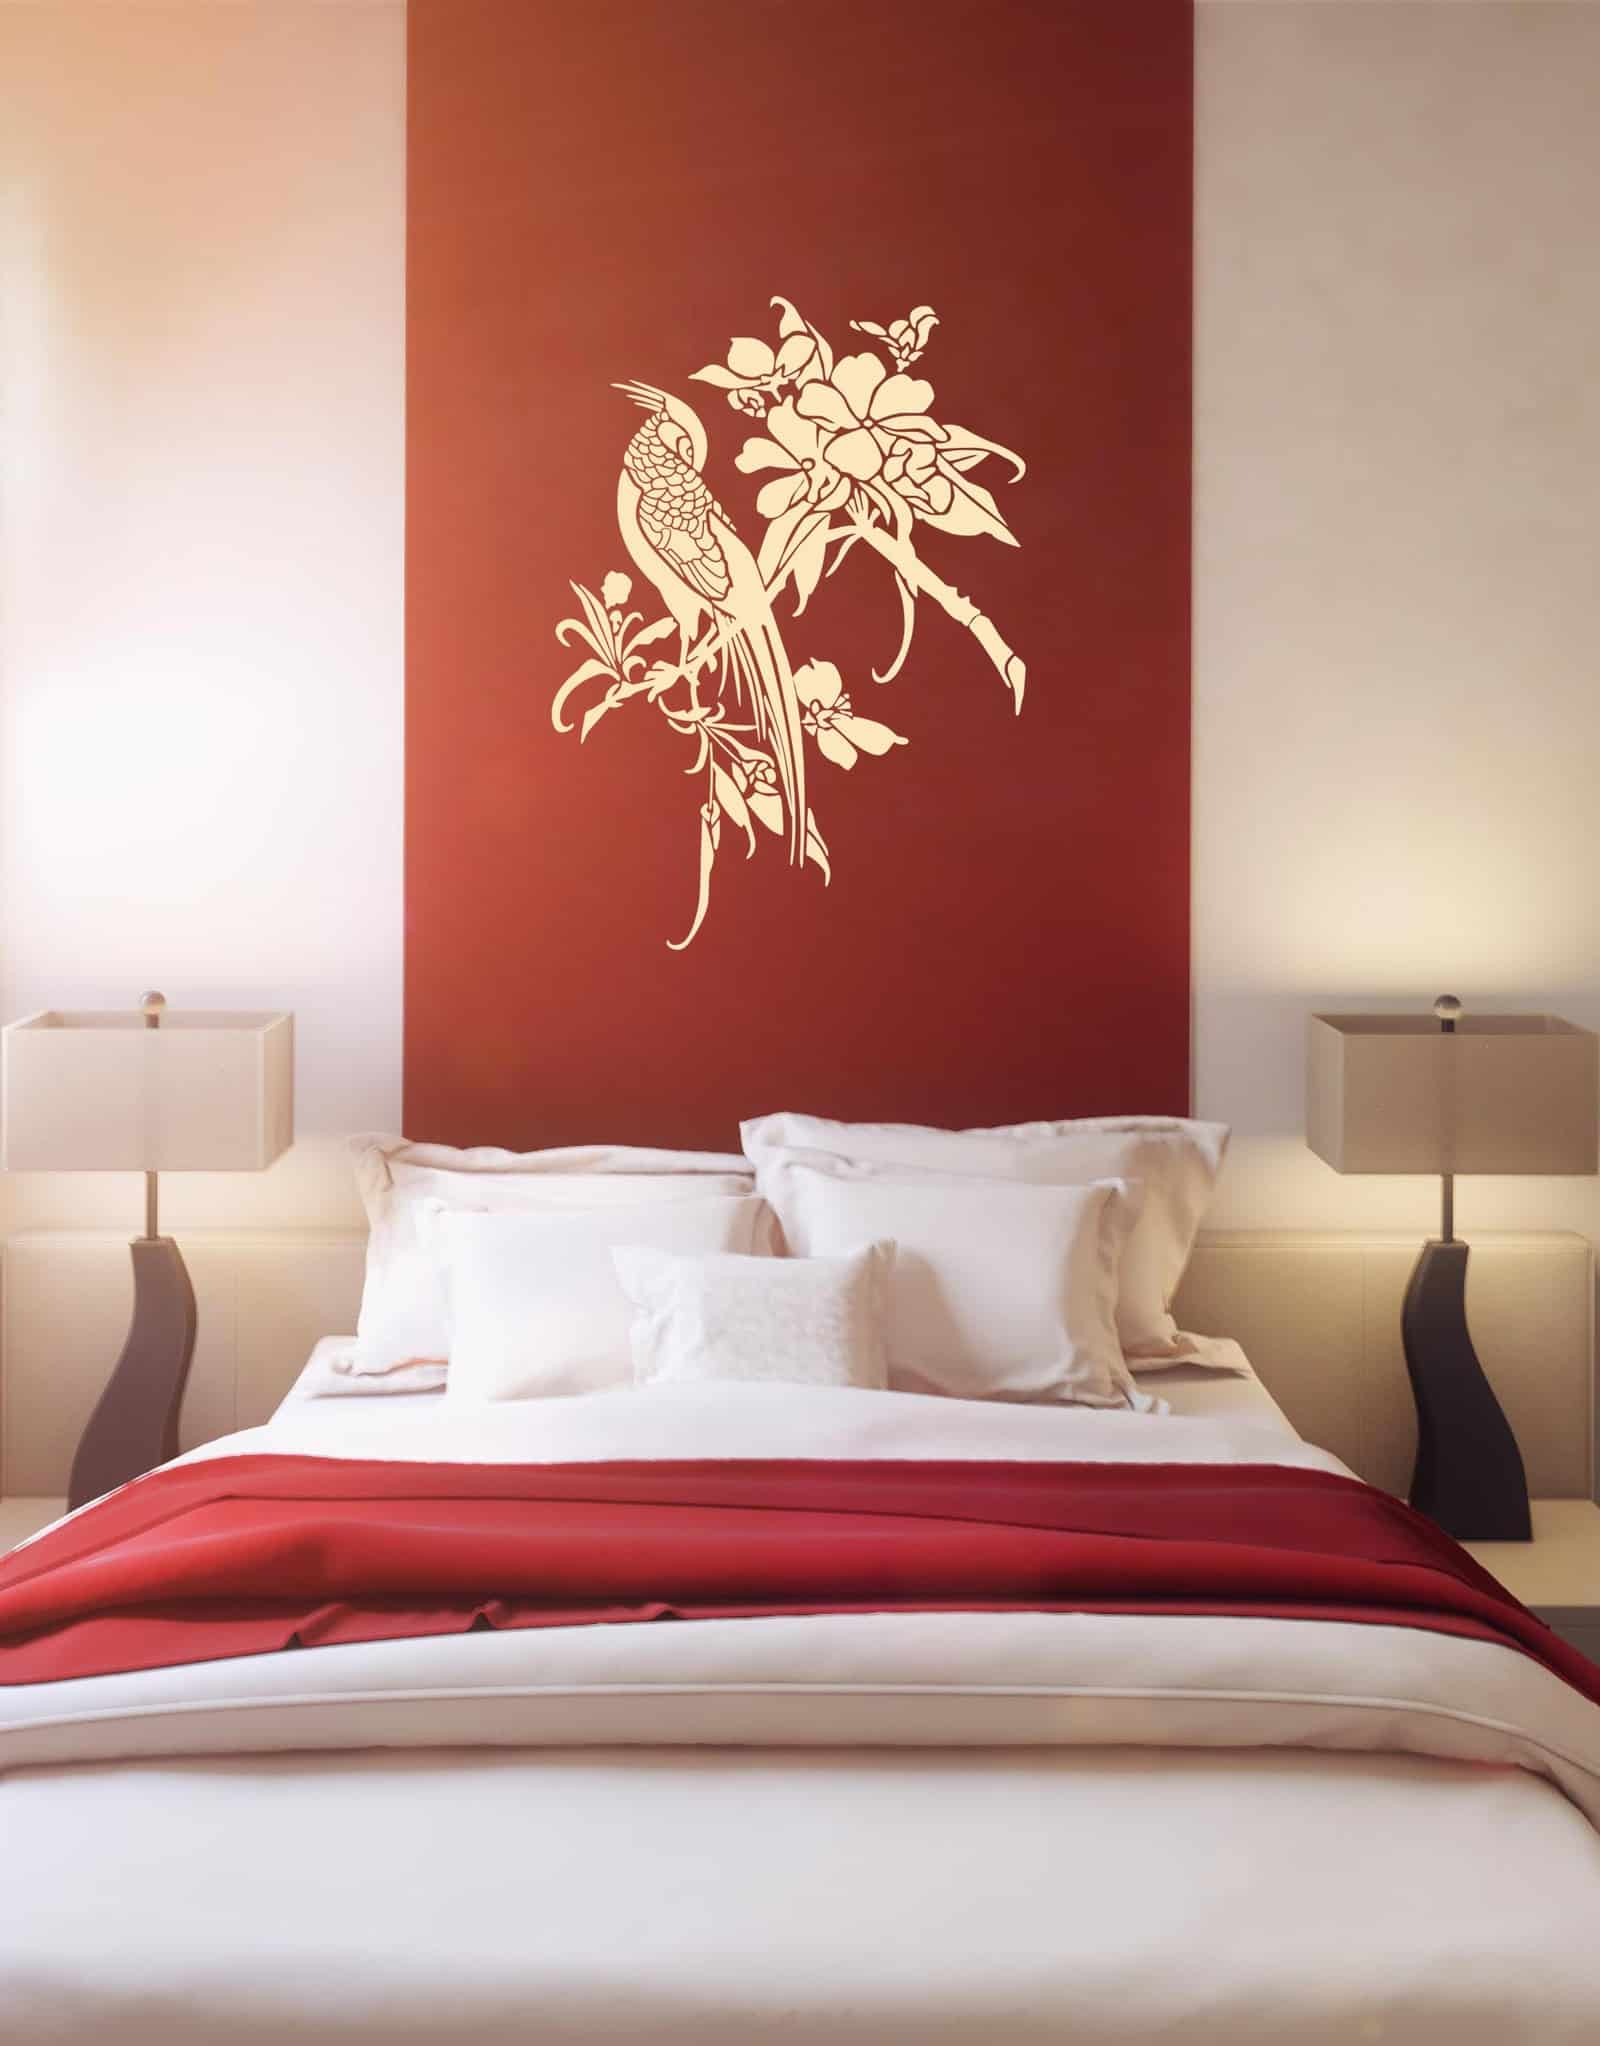 Asian bird 3 Bedroom3 sticker